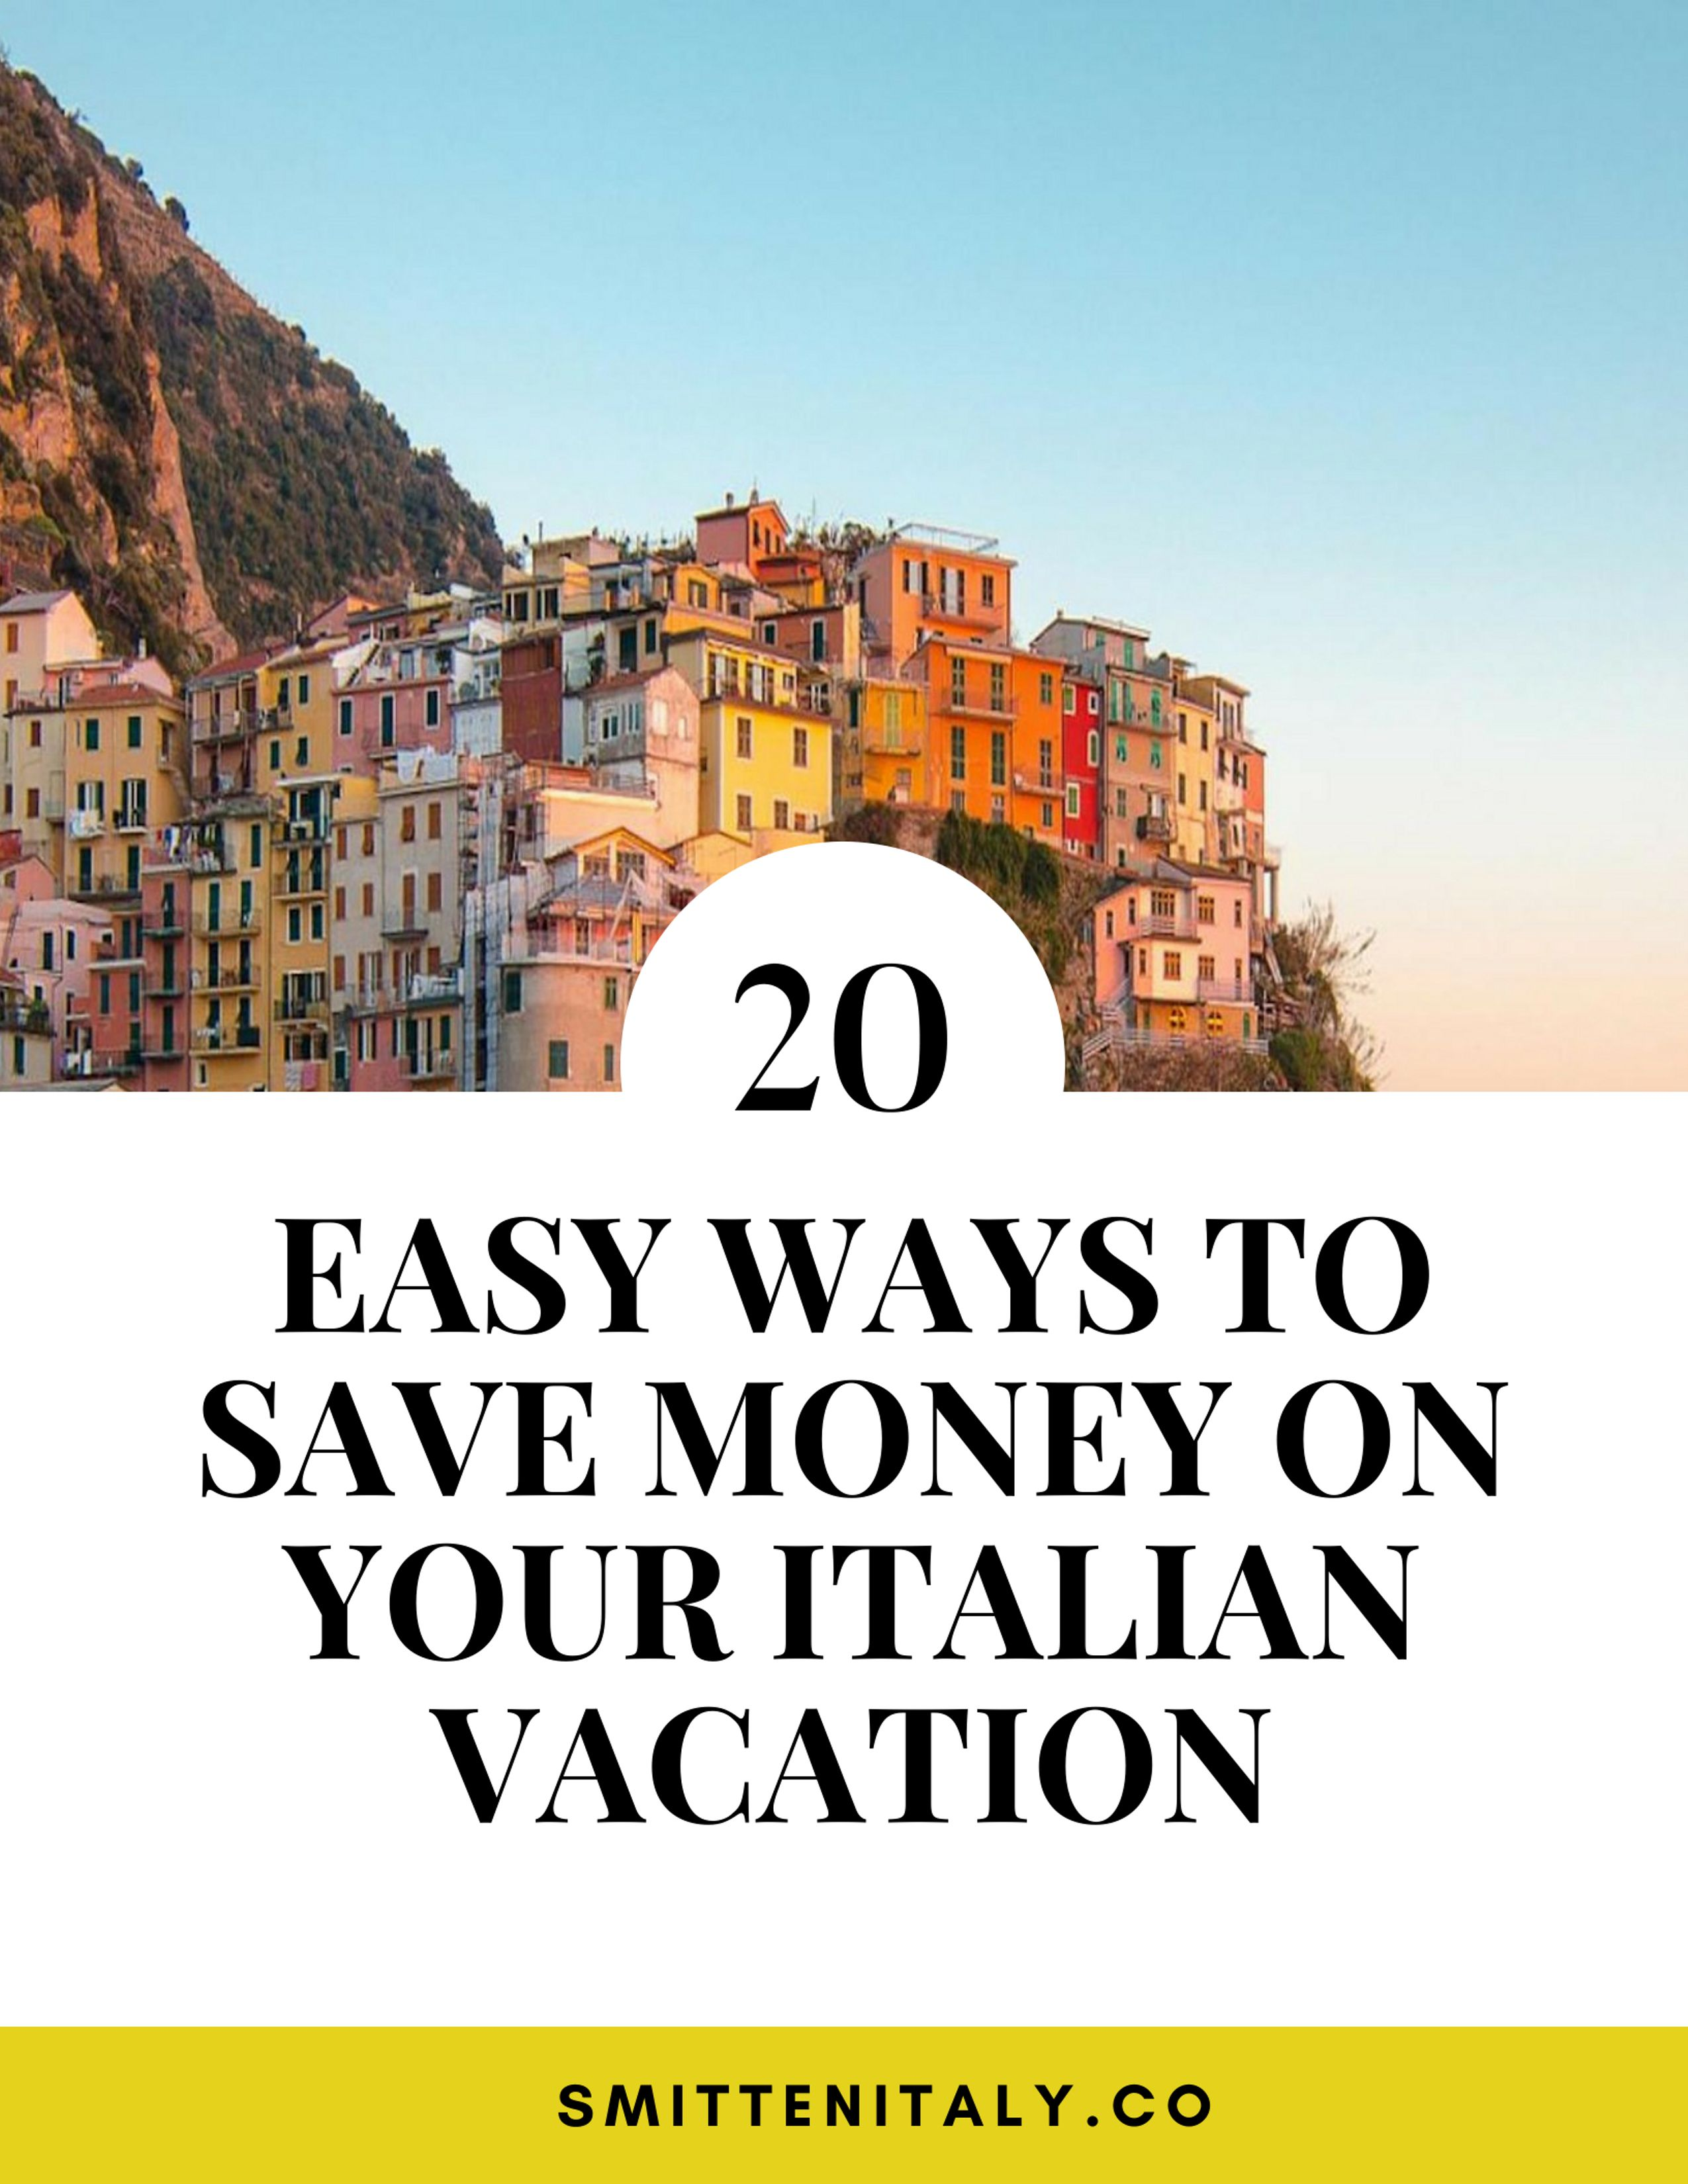 There Are So Many Ways To Cut Your Spending And Still Have A Wonderful Trip Today I M Sharing My Favorite Of Saving Money Once You In Italy